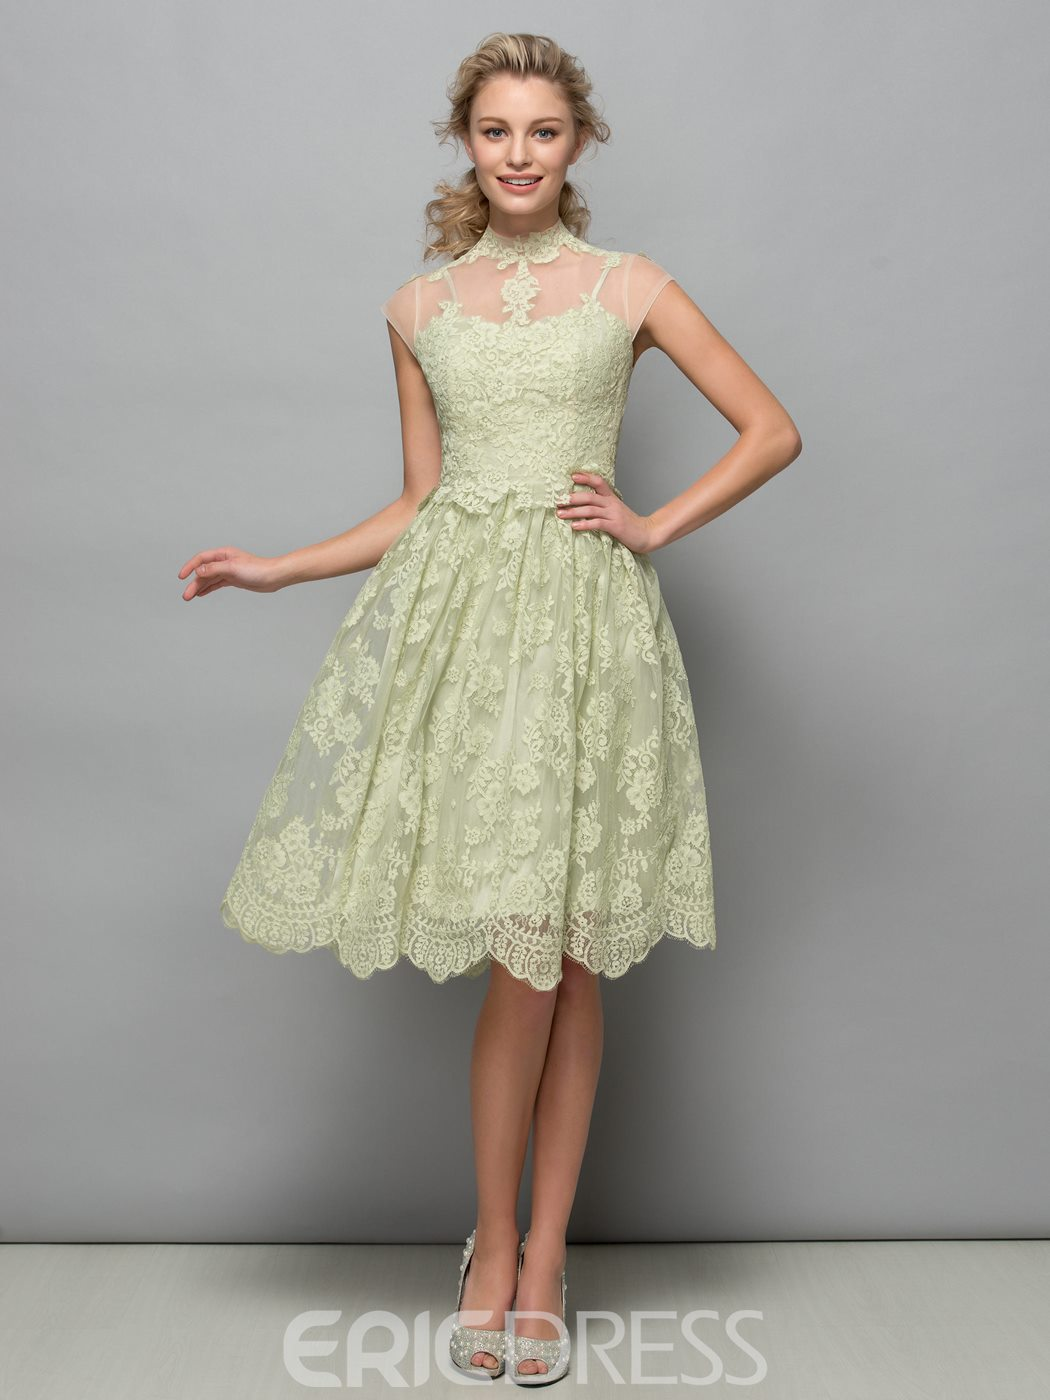 Ericdress Cap Sleeves High Neck Appliques Lace Cocktail Dress